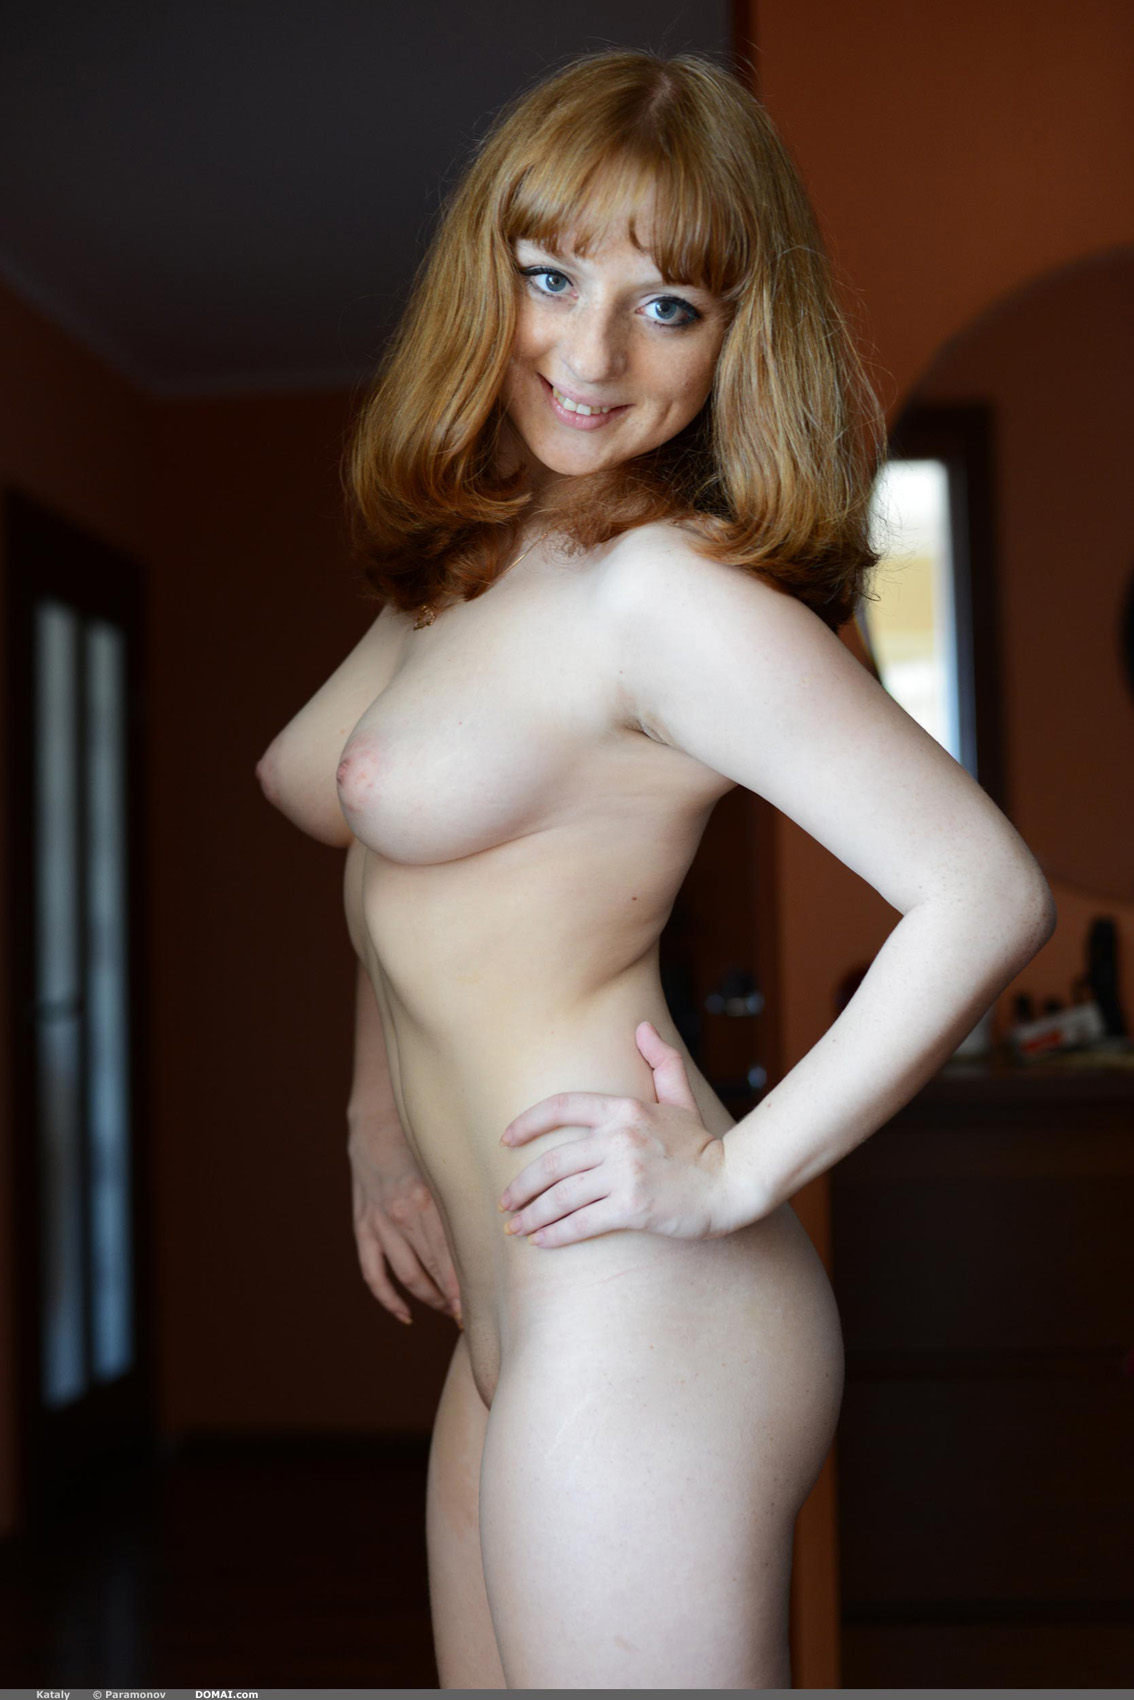 The most beautiful redhead nude